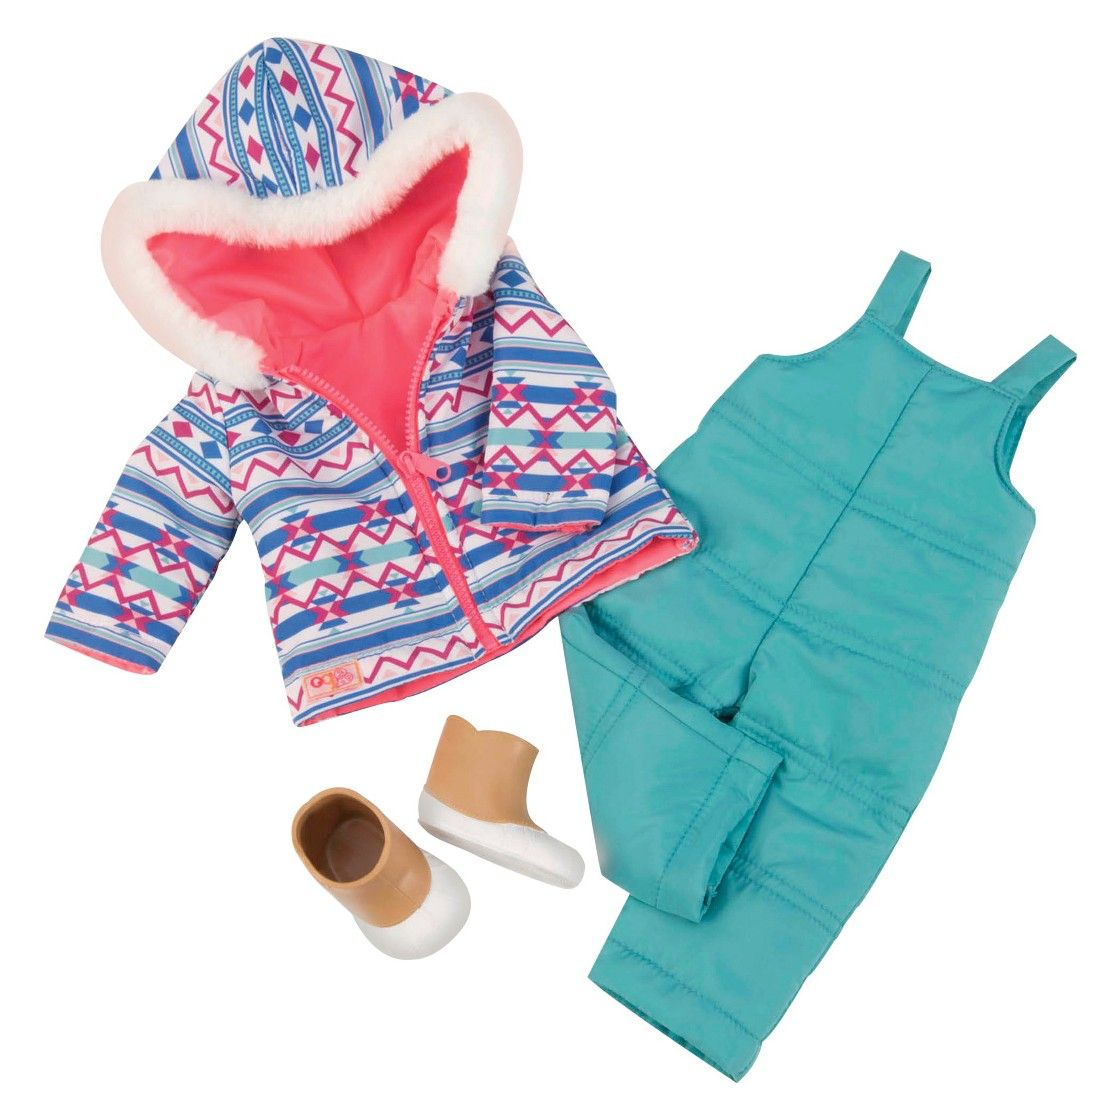 Our Generation Deluxe Outfit - Snow Bright | birthday | Pinterest ...